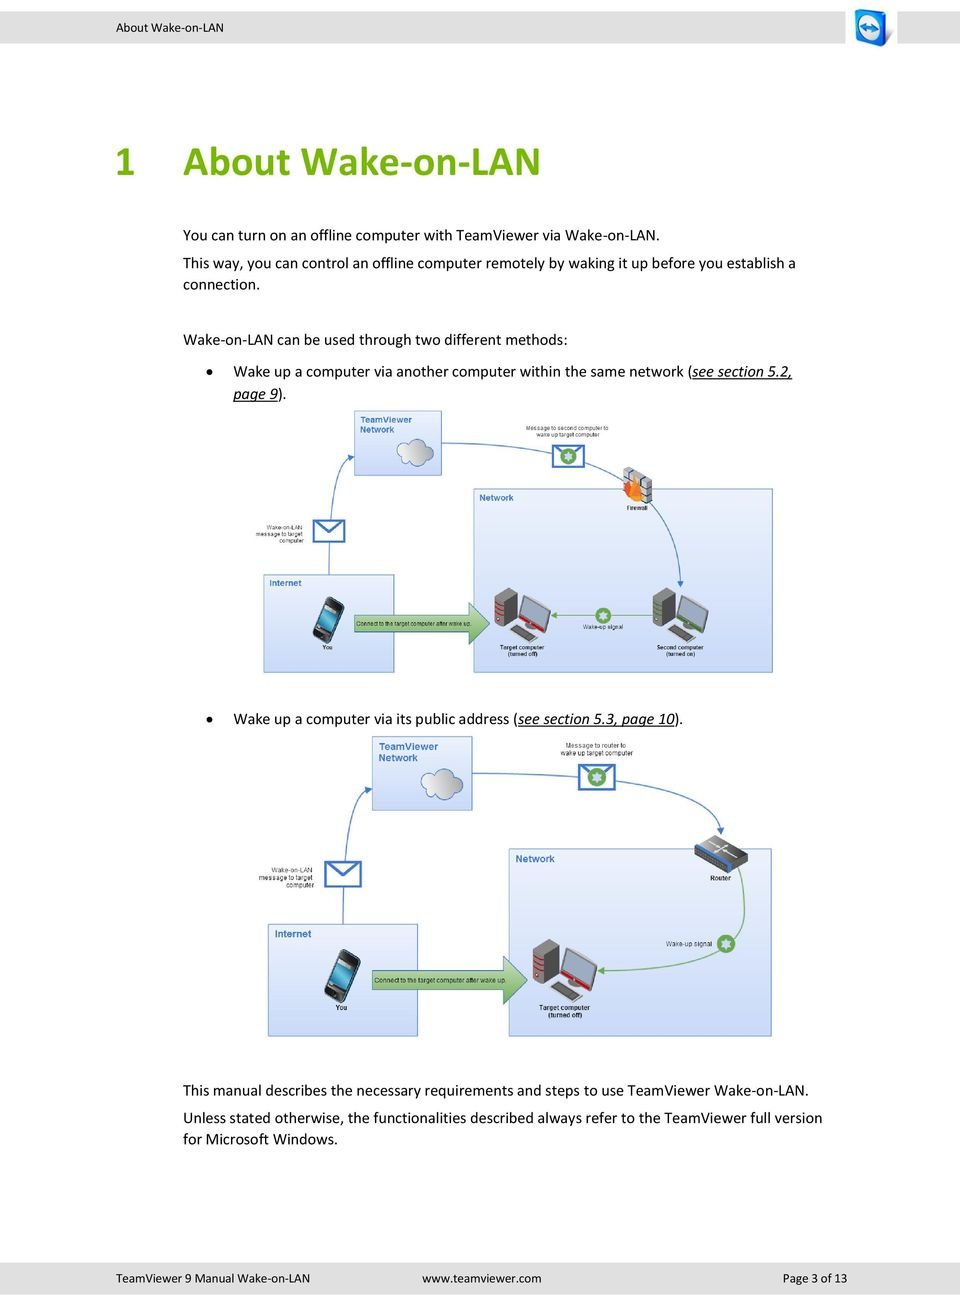 Wake-on-LAN can be used through two different methods: Wake up a computer via another computer within the same network (see section 5.2, page 9).